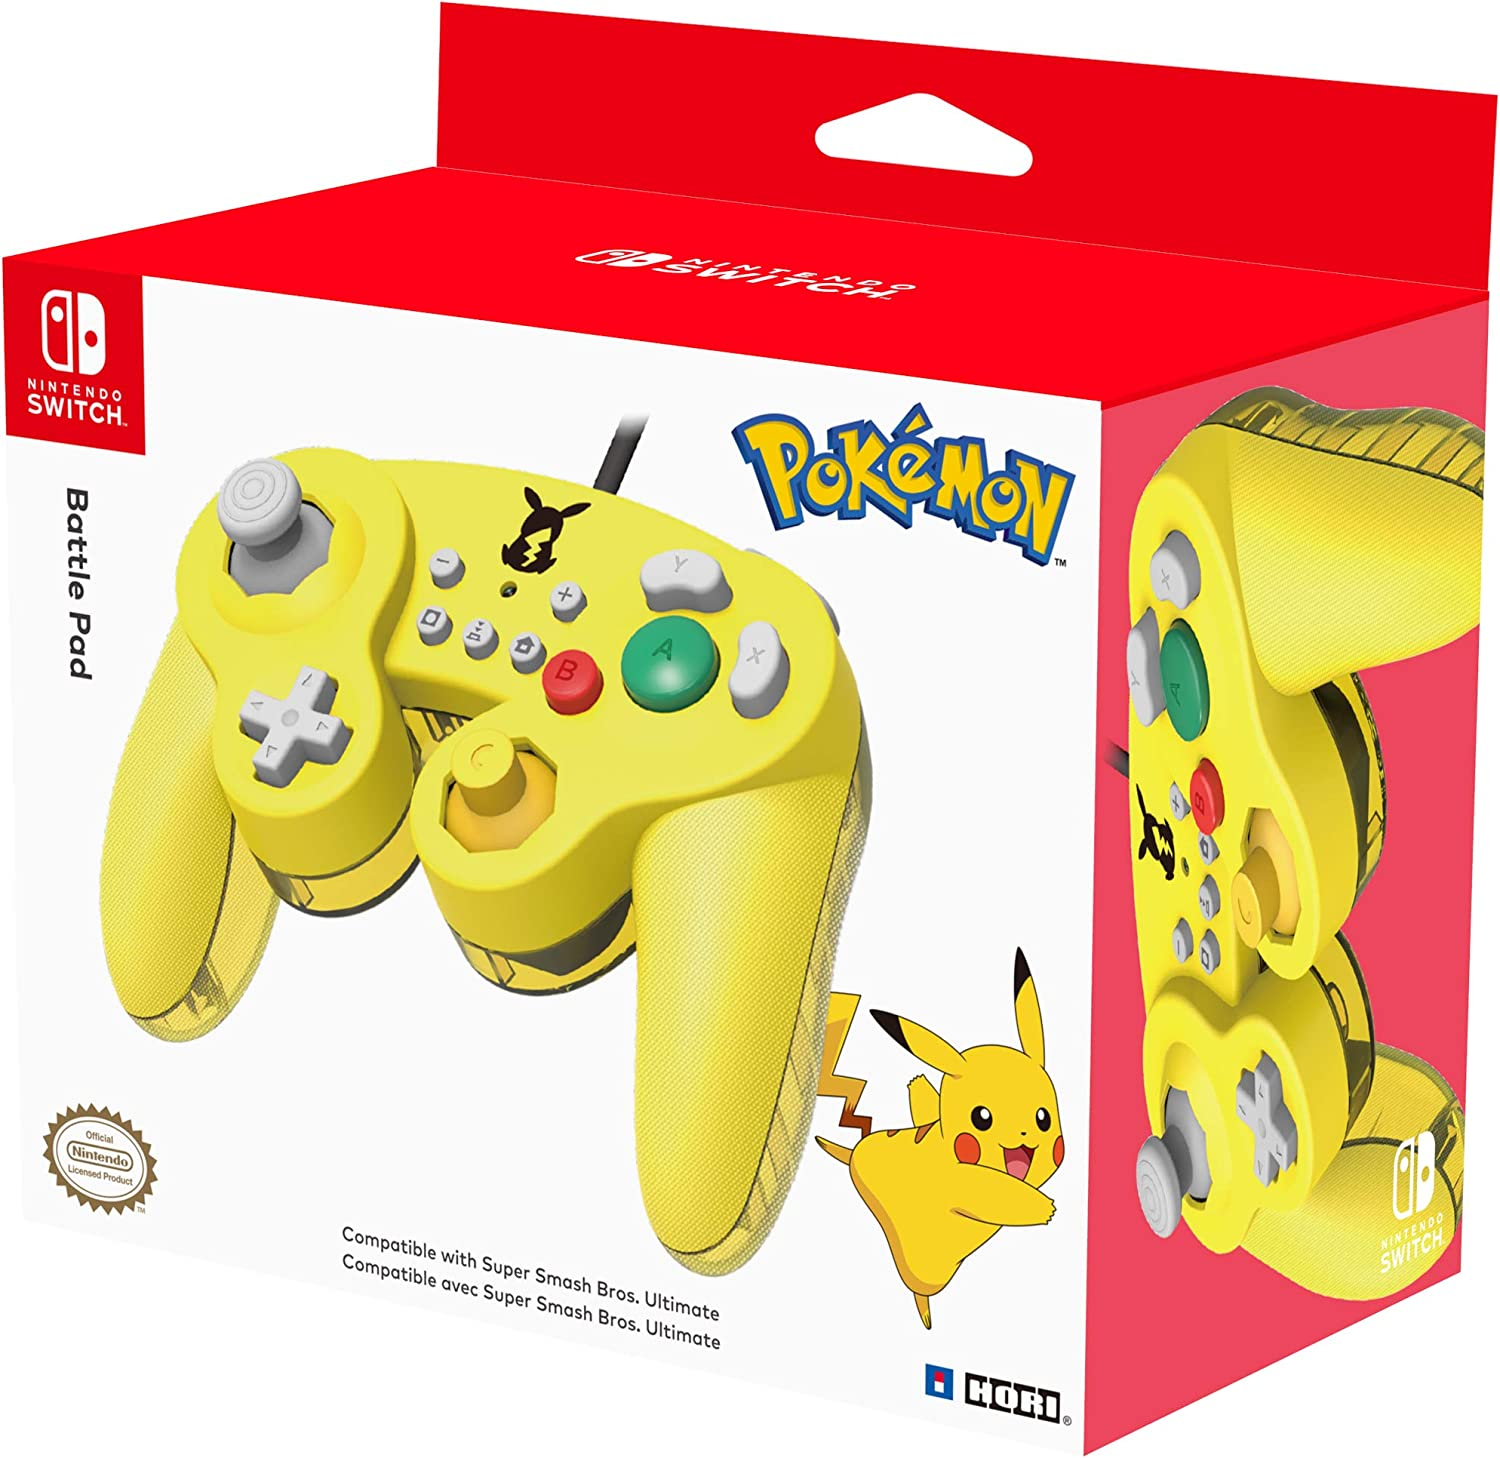 Official Nintendo Licensed Smash Bros Gamecube Style Controller for Nintendo Switch Pikachu Version - Nintendo Switch [Importación inglesa]: Amazon.es: Videojuegos